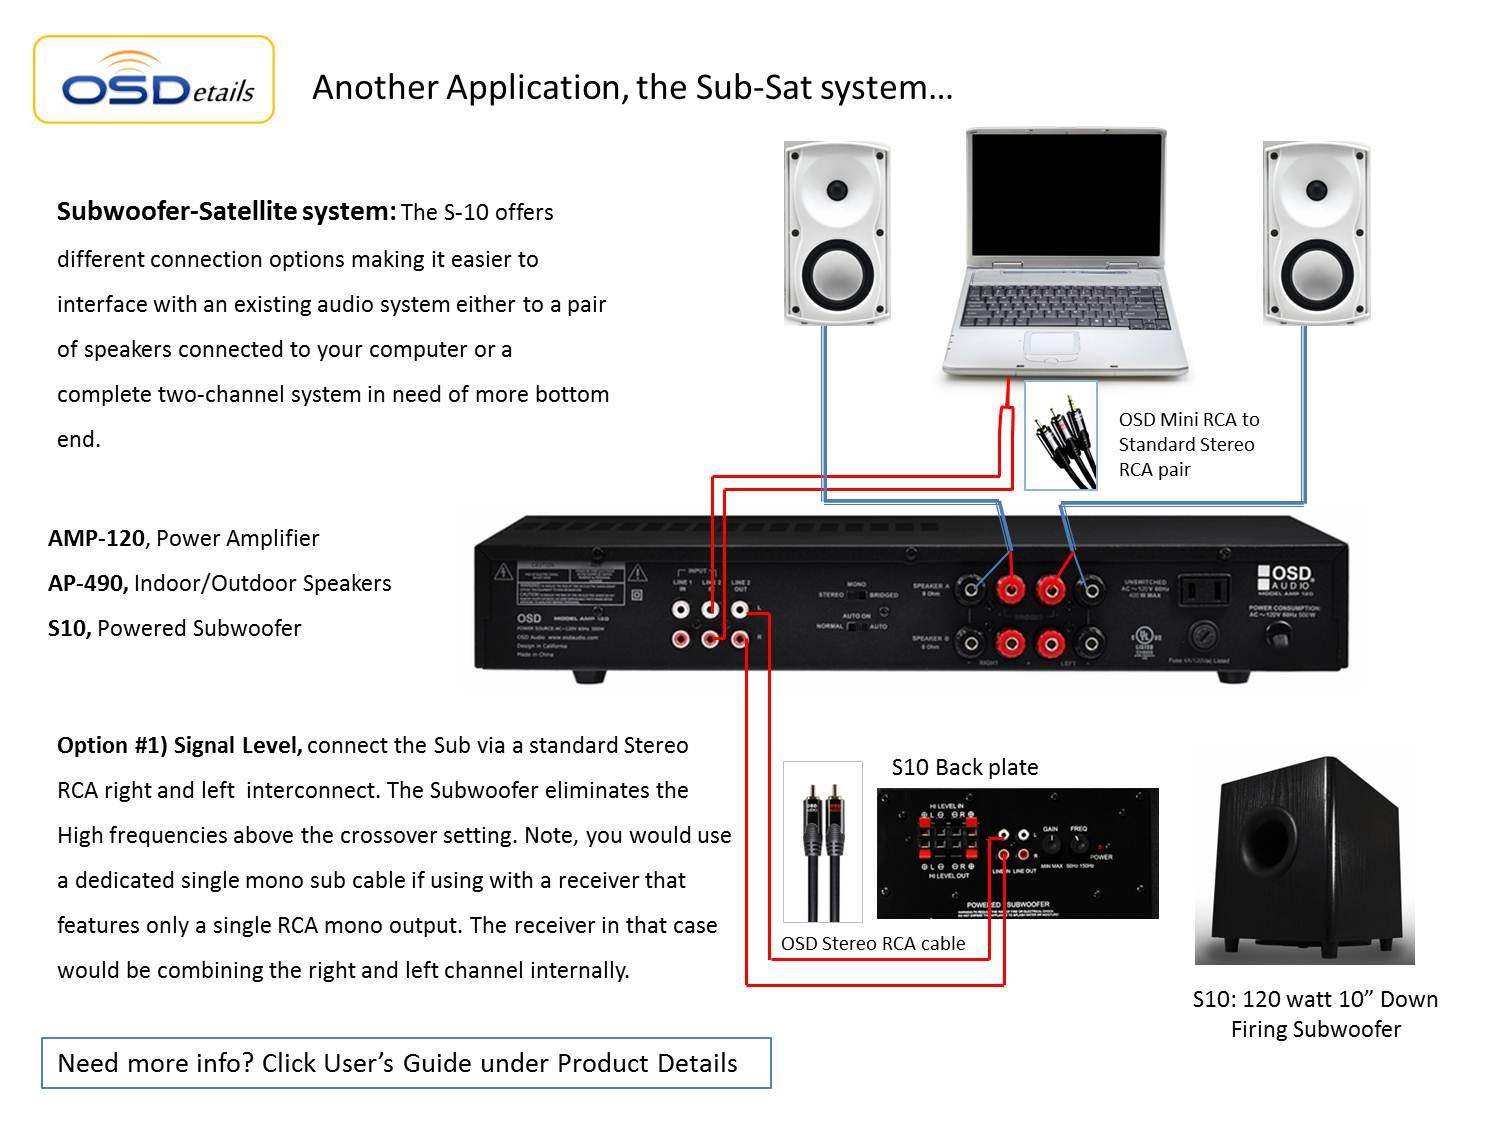 wiring for amplifier receiver audio home wiring schematic diagram Car Audio Wiring home stereo subwoofer wiring blog wiring diagram lan cable wiring home audio subwoofer wiring configurations wiring